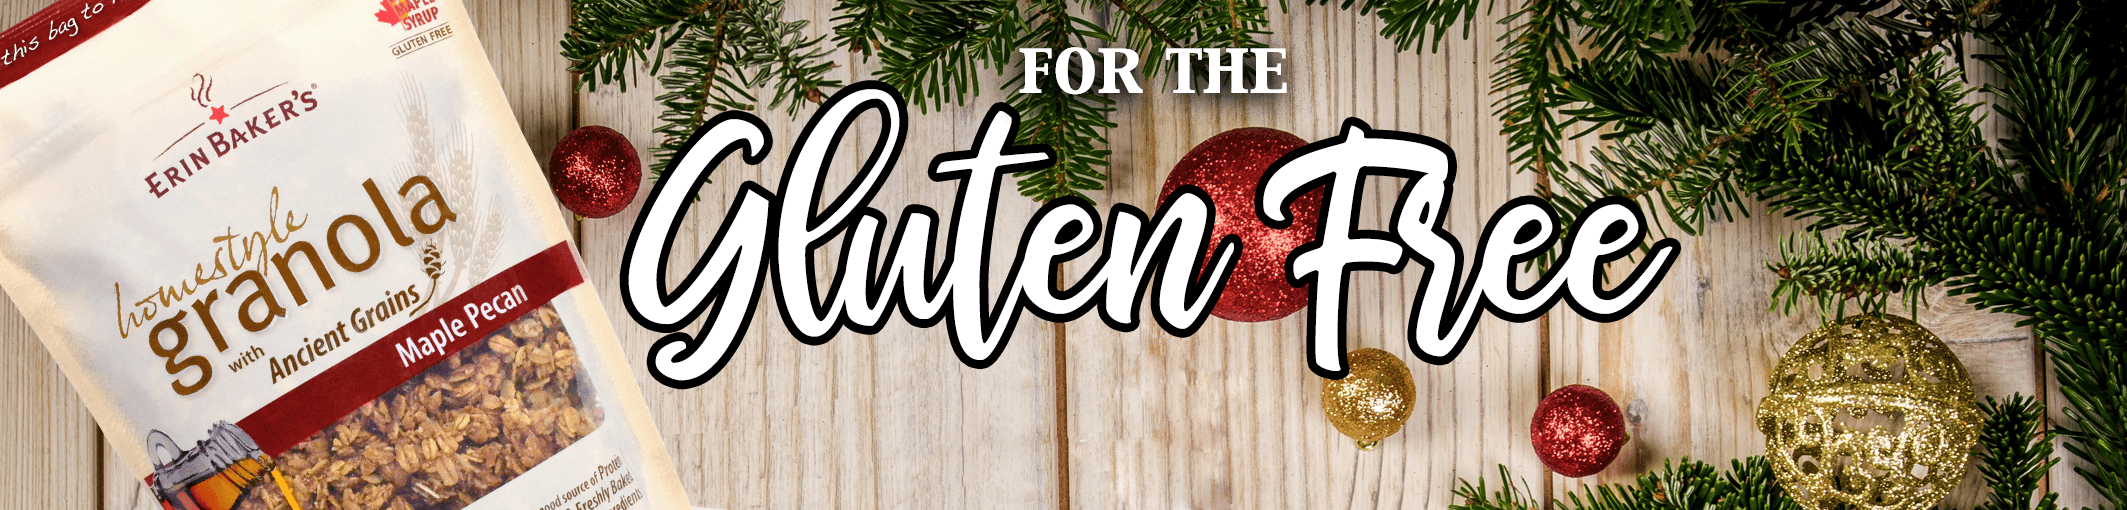 Stocking Stuffers for the Gluten Free